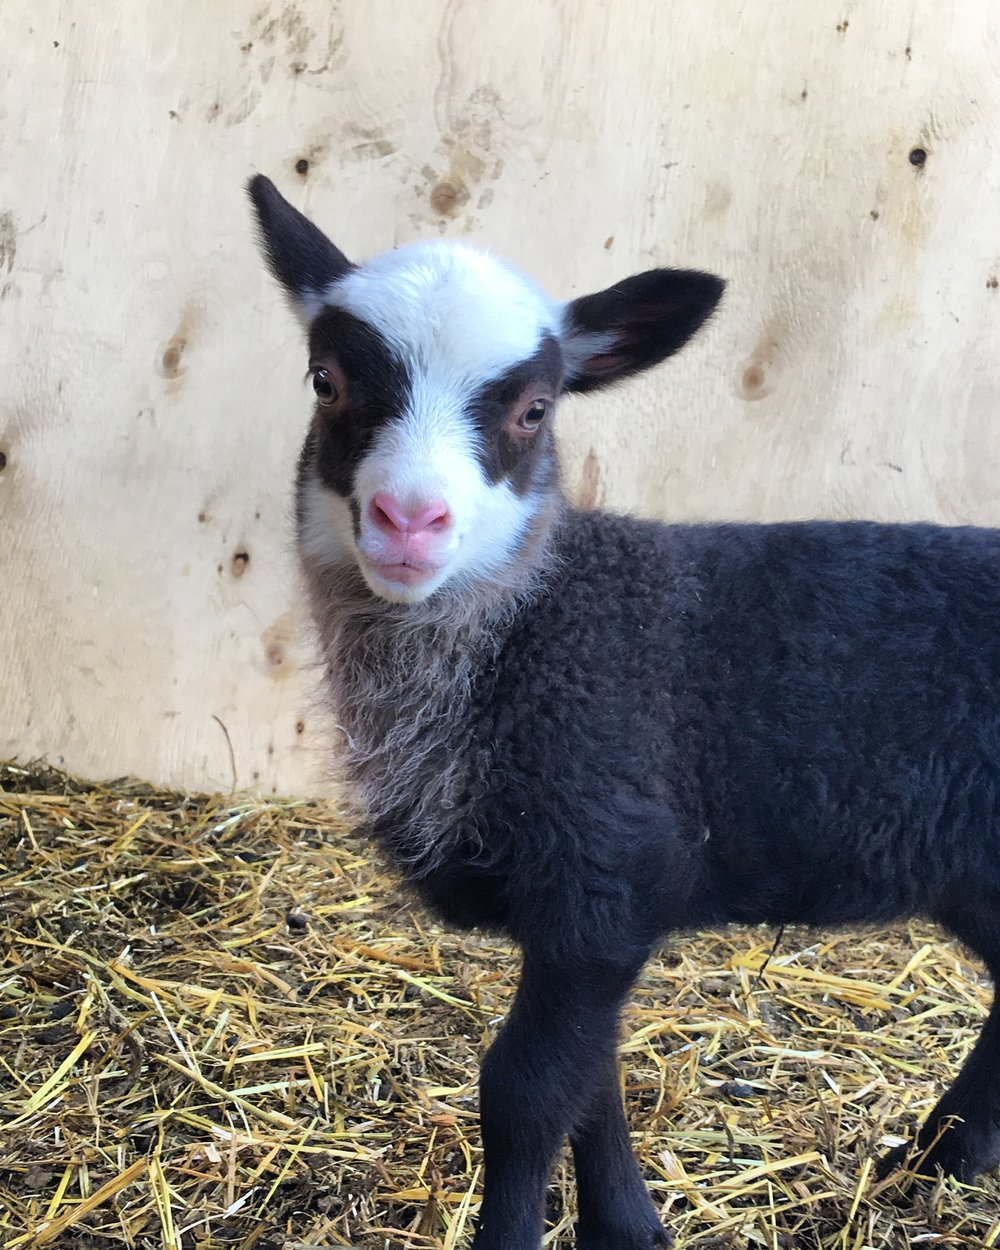 This ewe lamb was born on May 15, 2018 weighing 2.5kg. Her mother is Erica and the sire is Muddy, both are purebred shetland sheep. She has a twin brother. We have nicknamed her brown beard for the time being because of the beautiful patch of grey/brown fleece down her neck. She has beautiful fleece and we love that she is carrying on her mother's eye-patches.